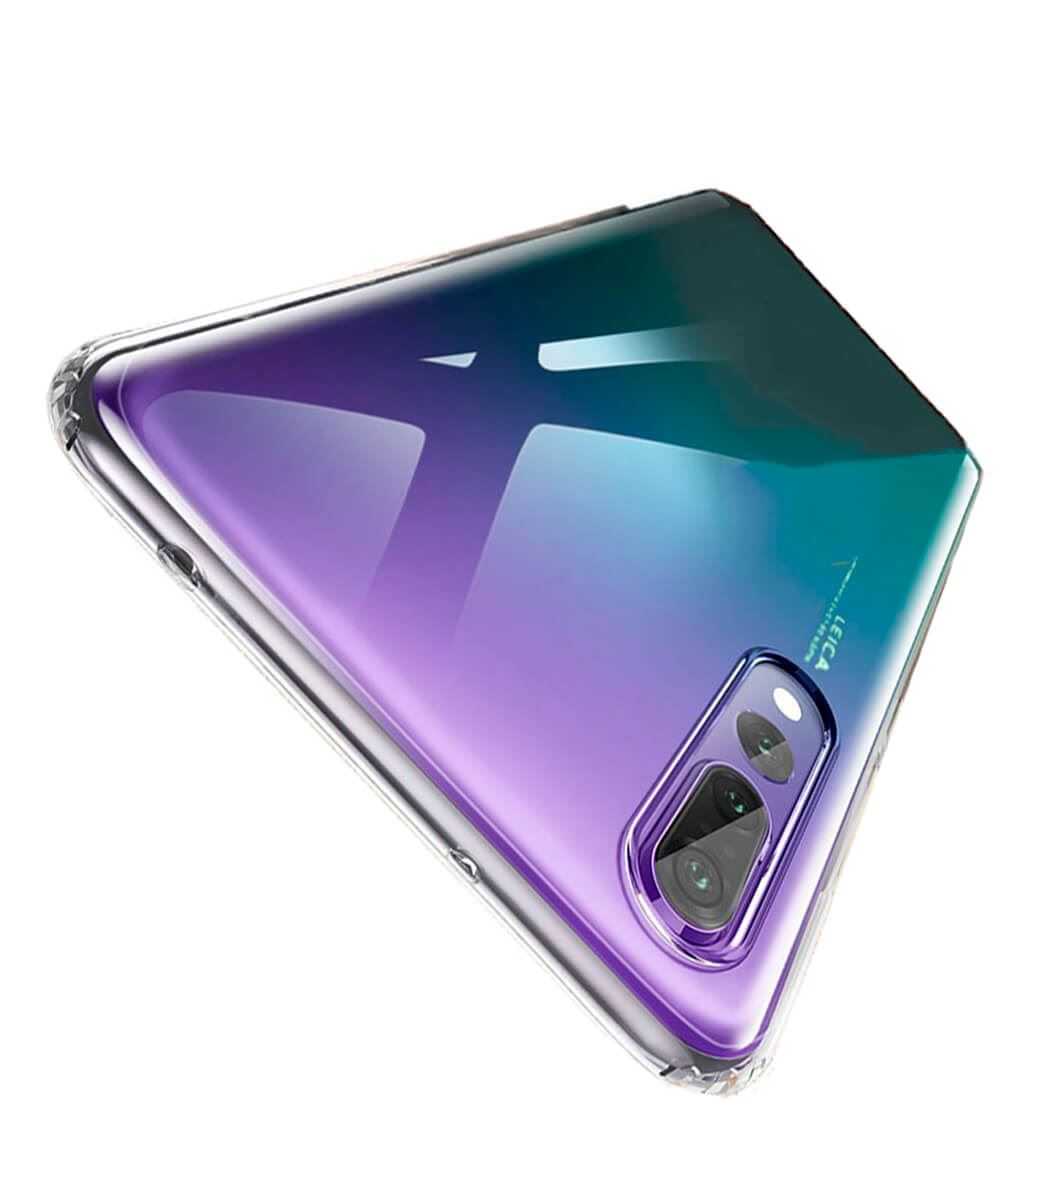 Shockproof-Silicone-Protective-Clear-Gel-Cover-Case-For-Huawei-P20-Pro-P-Smart thumbnail 49